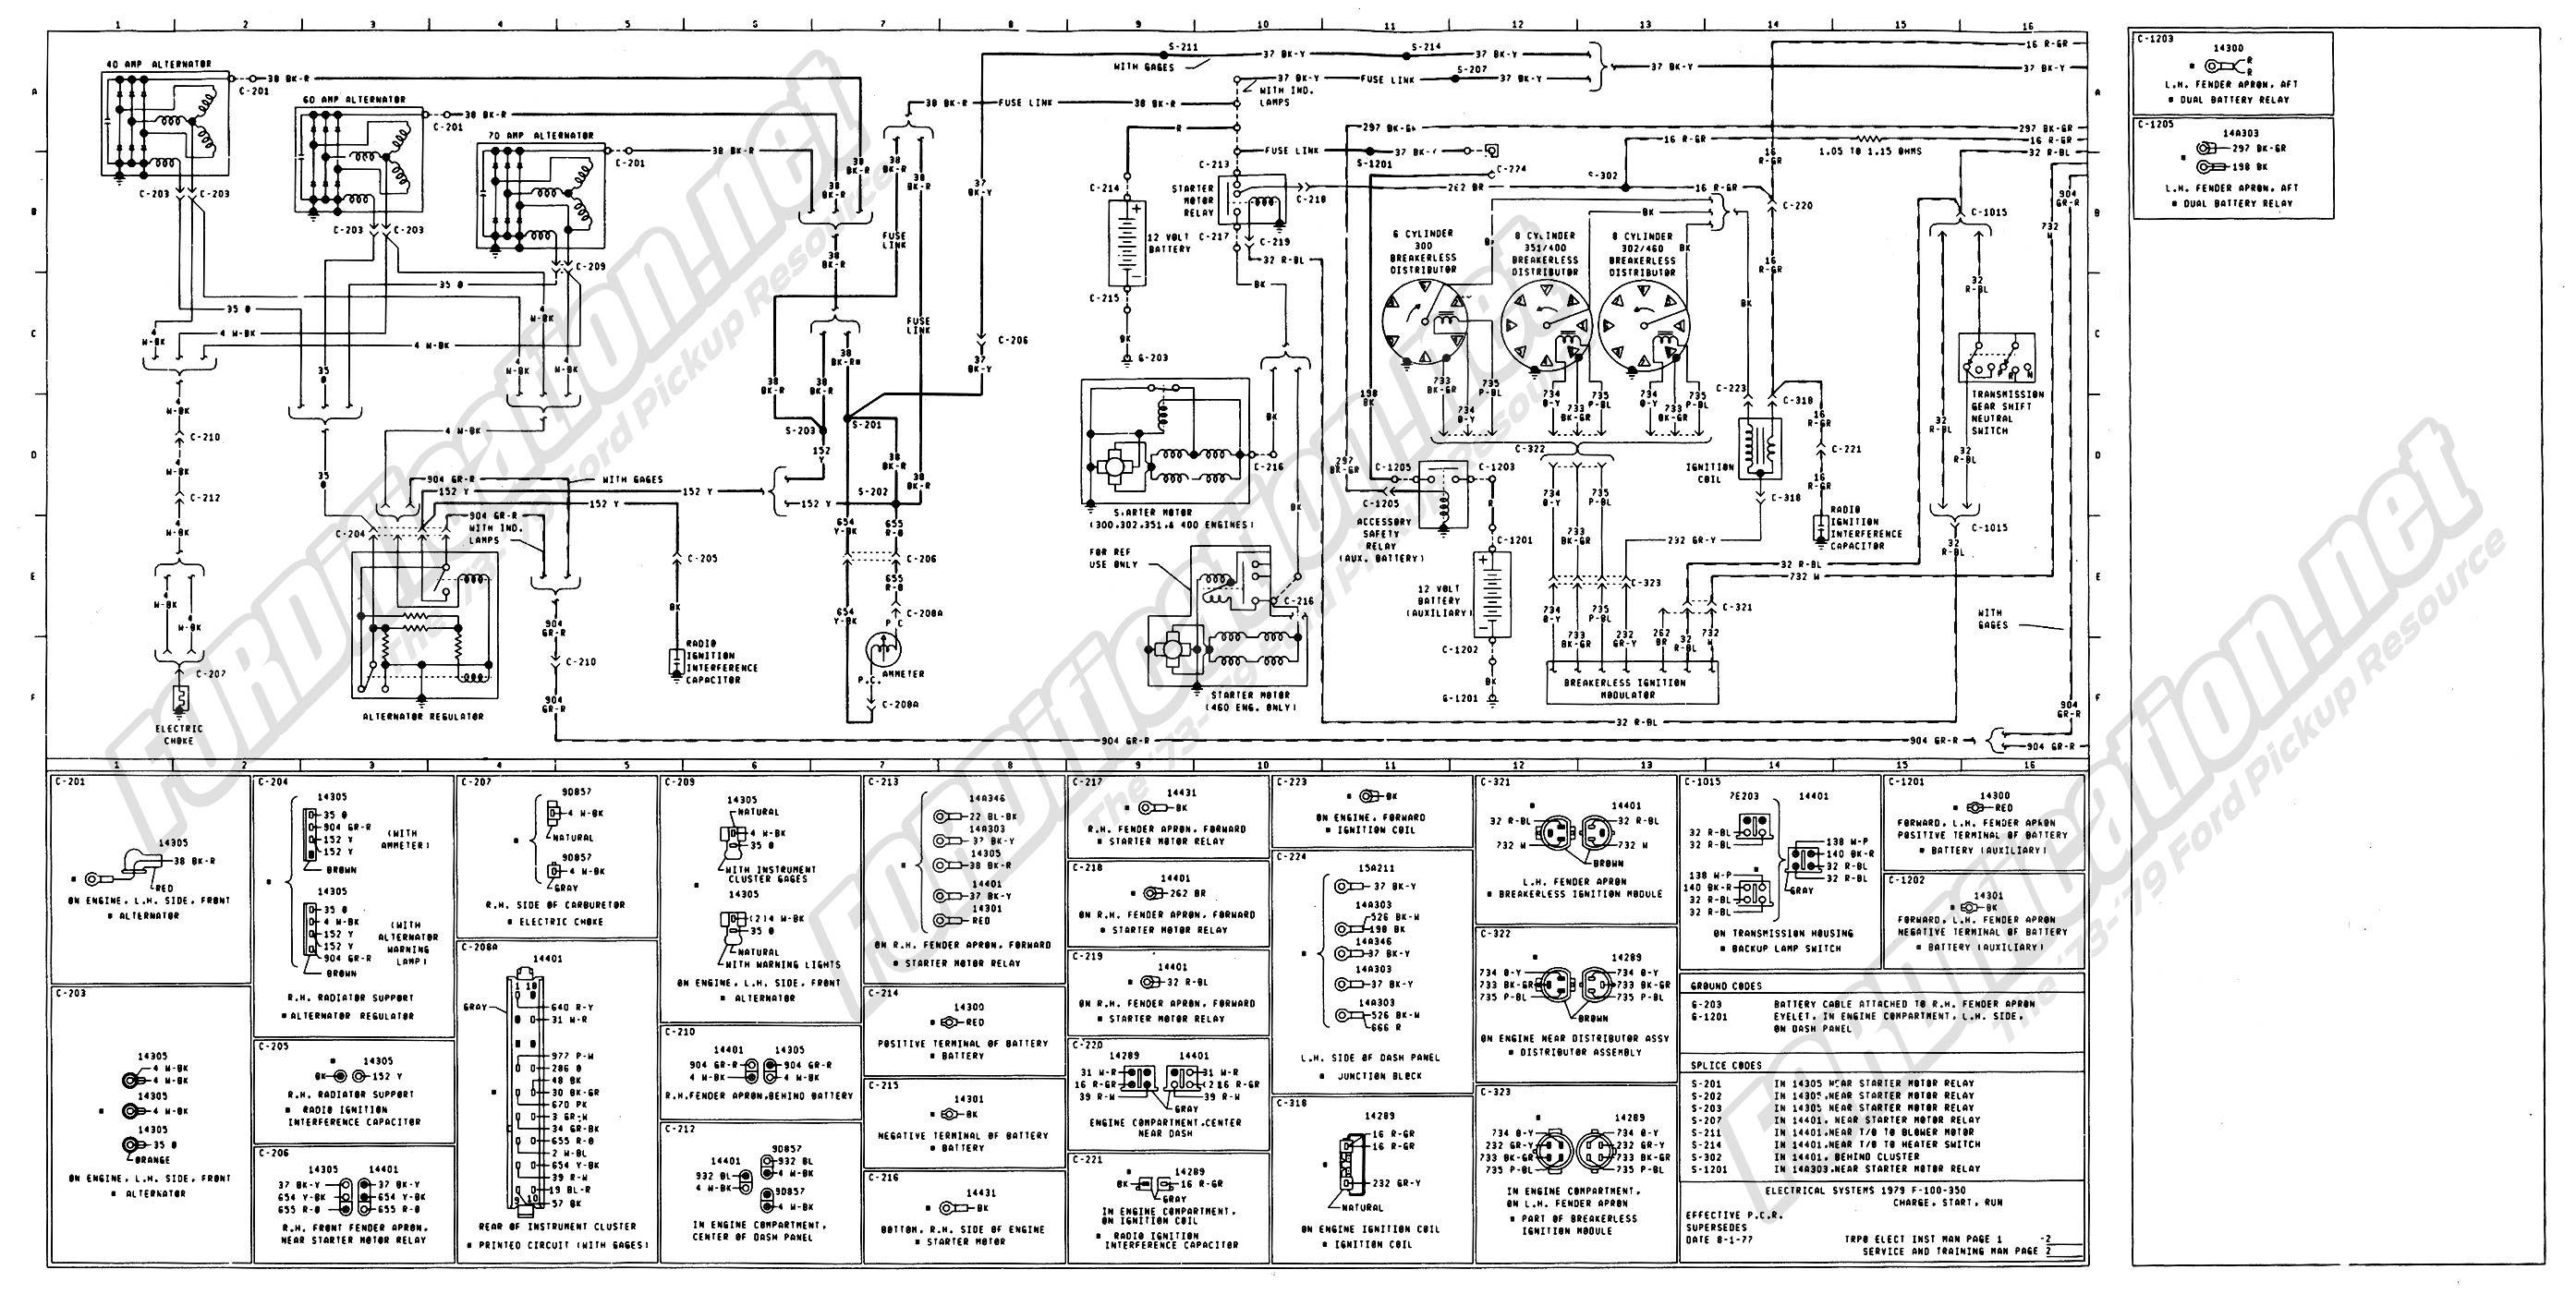 79 bronco wiring schematic wiring diagram for light switch \u2022 1984 f150 wiring diagram 1973 1979 ford truck wiring diagrams schematics fordification net rh fordification net 1988 ford bronco wiring